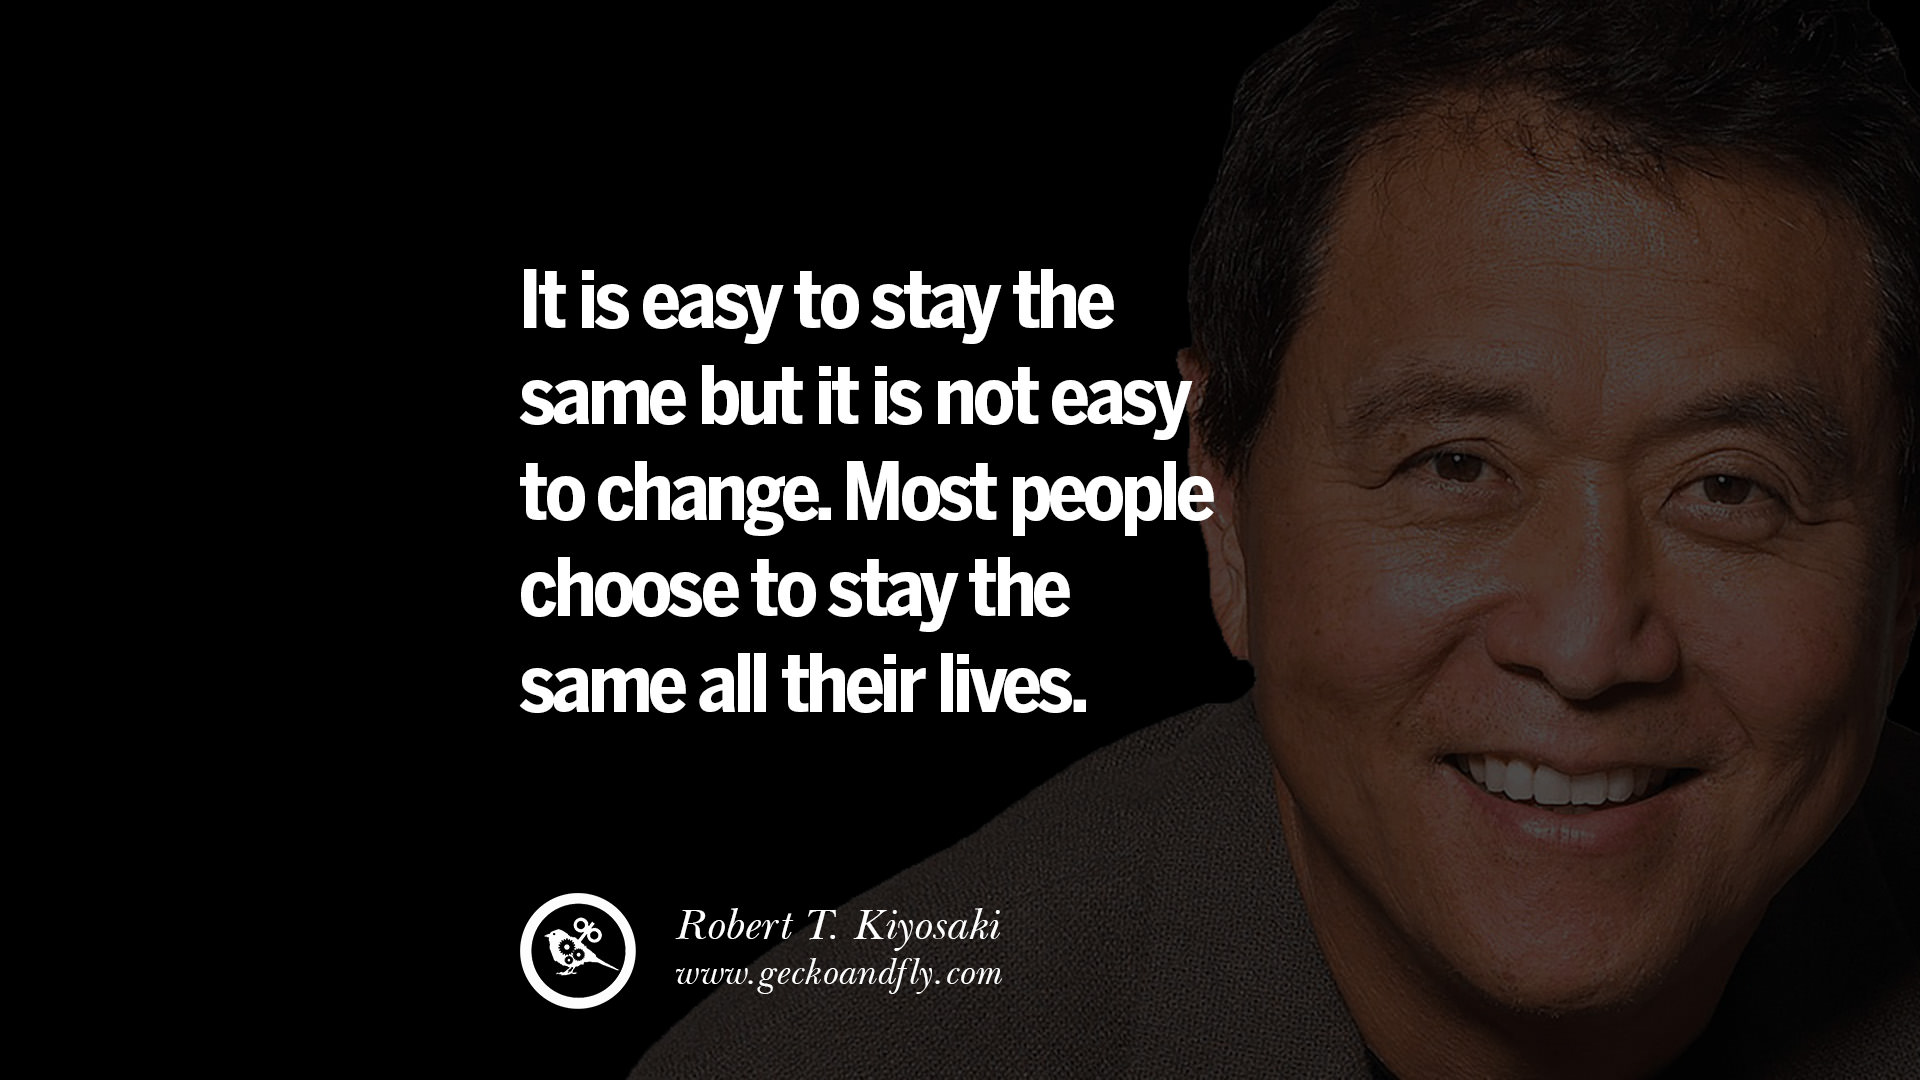 Poor Life Quotes Amusing 60 Robert Kiyosaki Quotes From Rich Dad Book On Investing Network